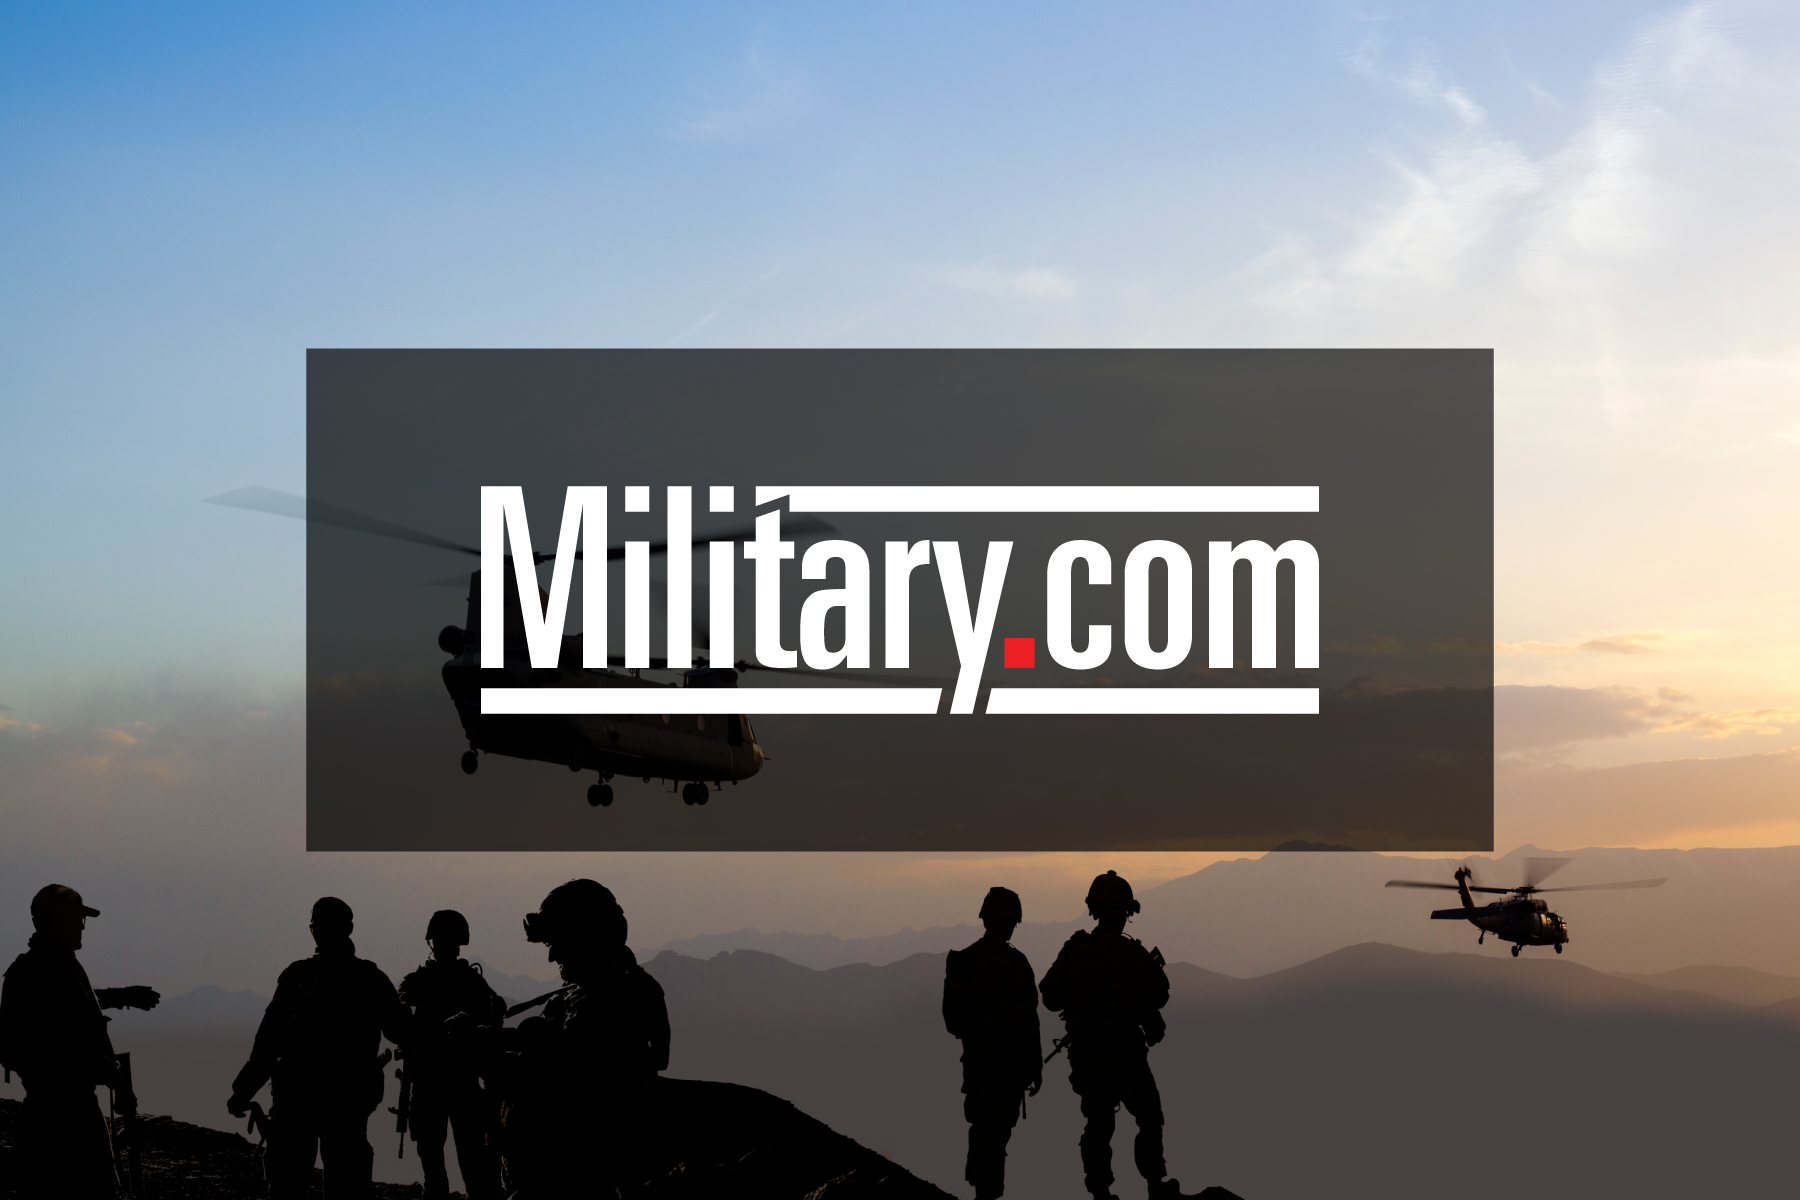 Local Native American leader Joseph Podlasek stands next to a plaque commemorating the Battle of Fort Dearborn on Monday, June 18, 2012, on Chicago's Southeast side.